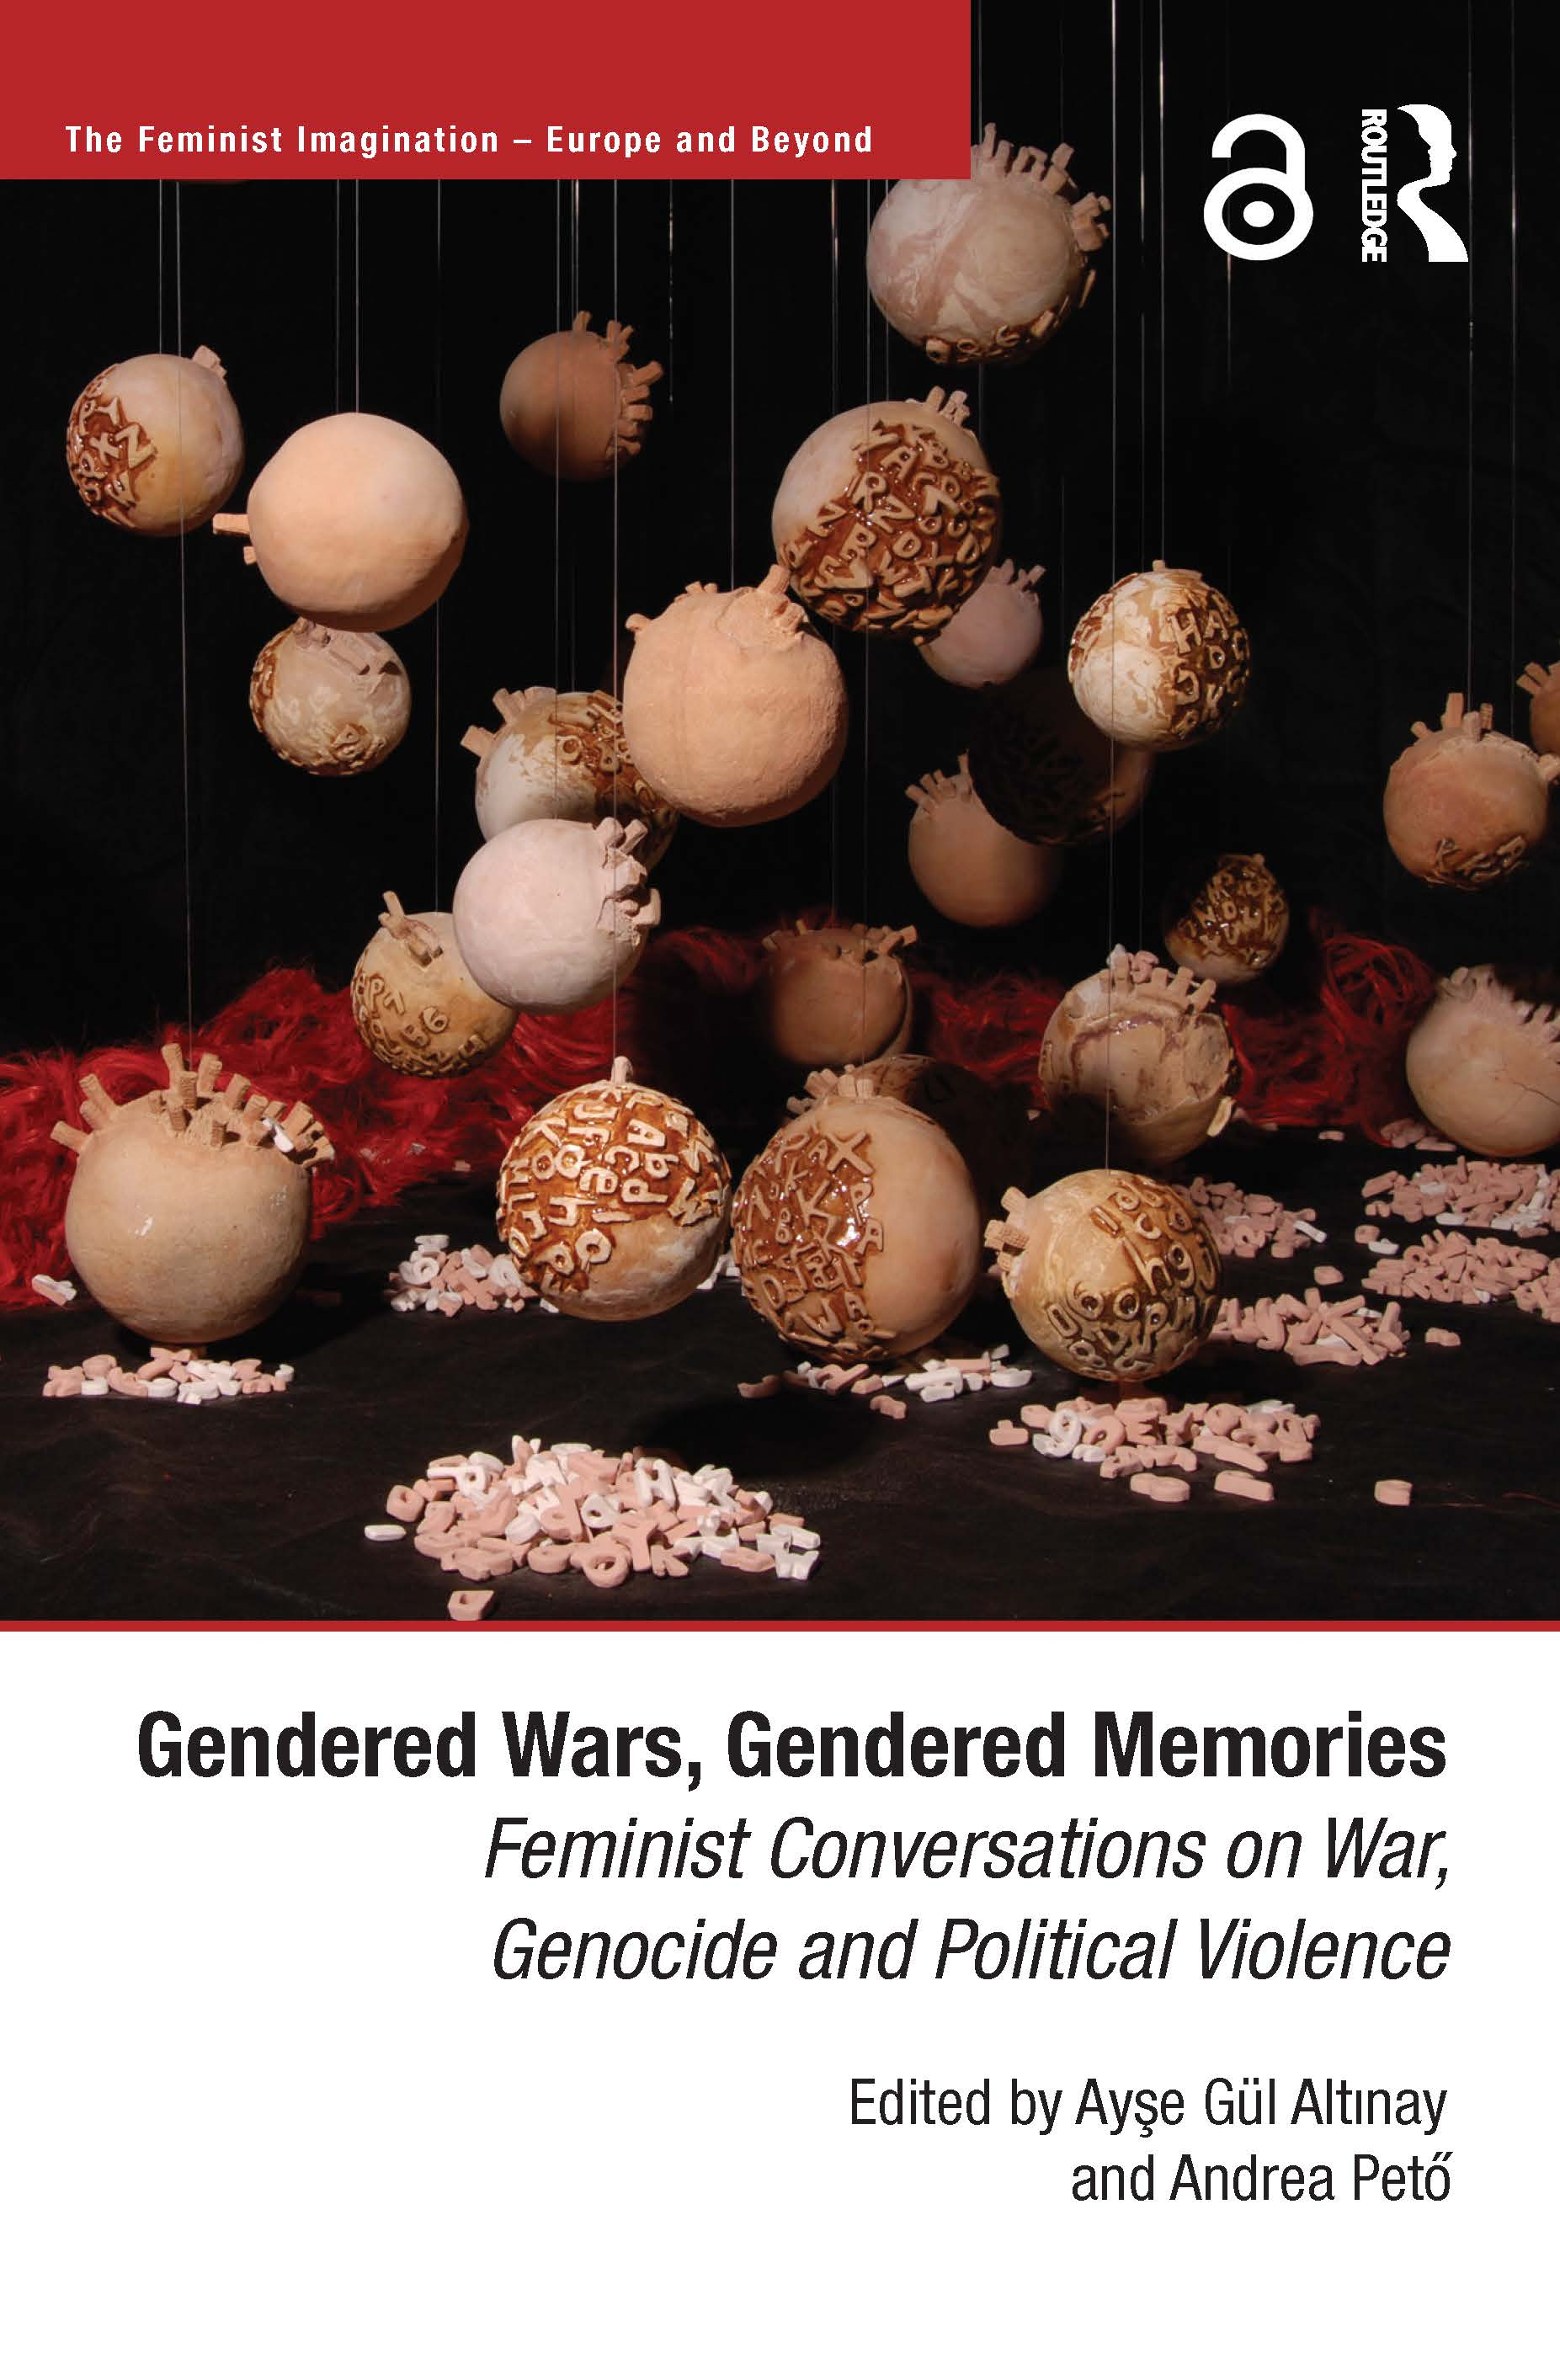 Gendered Wars, Gendered Memories